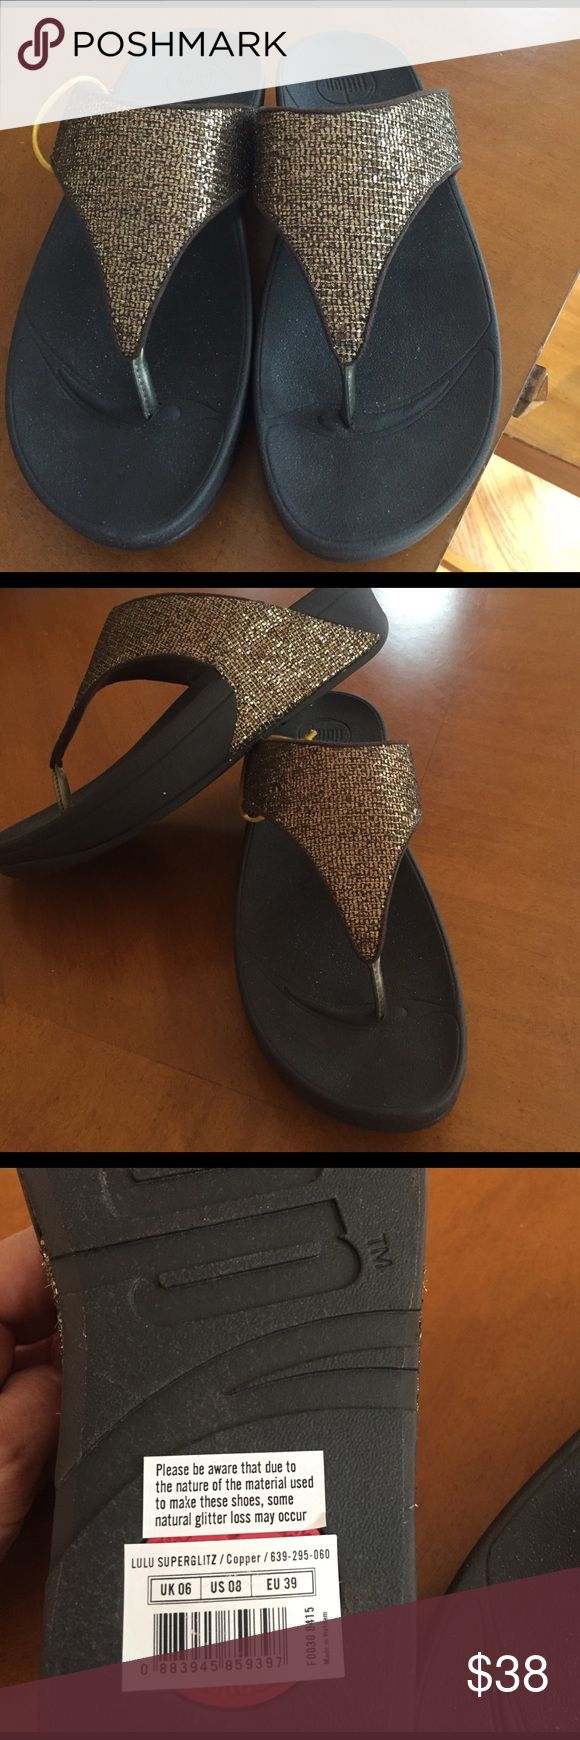 Fitflop sandals Fitflop bronze colored sparkly flip flops. Very comfortable. Brand new. fitflop Shoes Sandals